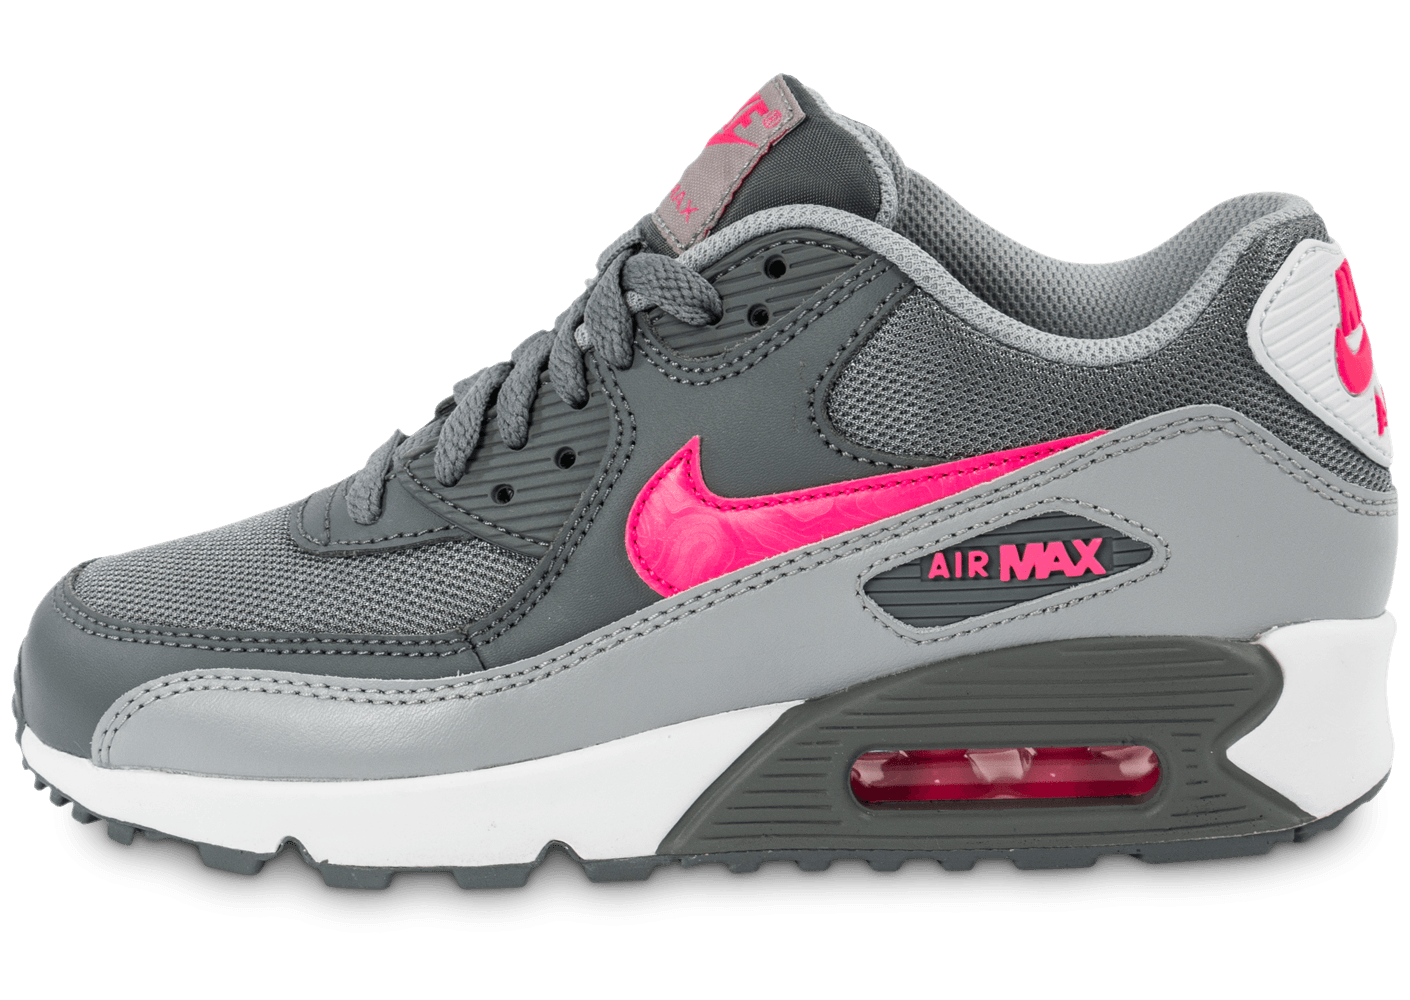 nike air max 90 femme grise et rose. Black Bedroom Furniture Sets. Home Design Ideas